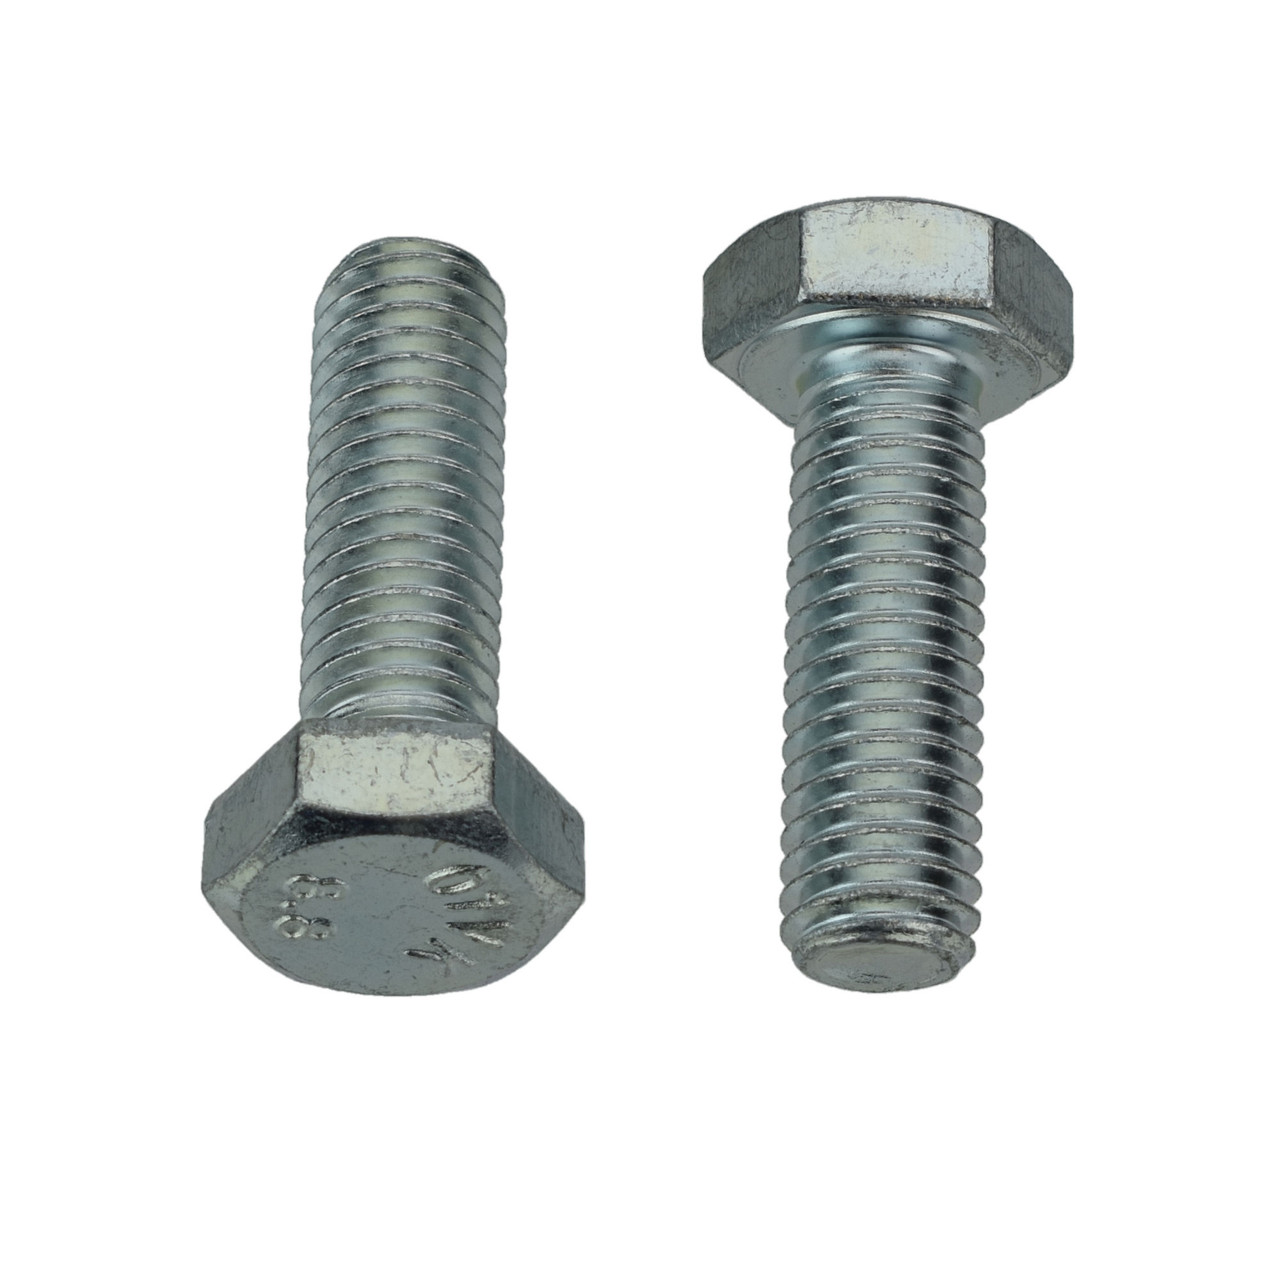 M8-1.25 x 25mm - 13mm Hex Head Bolt - Interchange: Auveco 14421 Disco 887pk